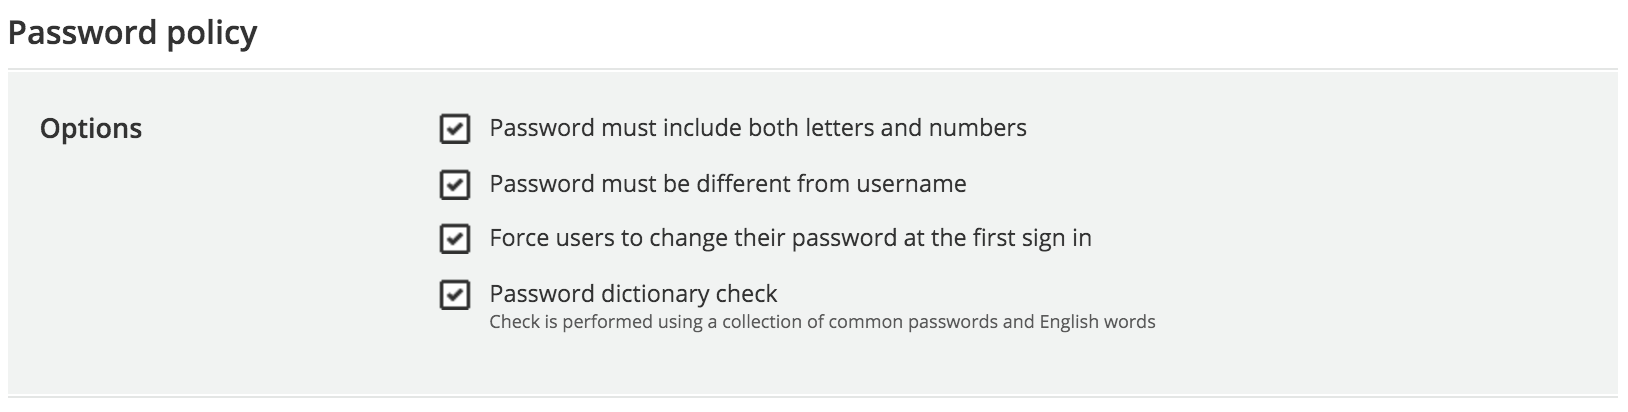 Password policy check